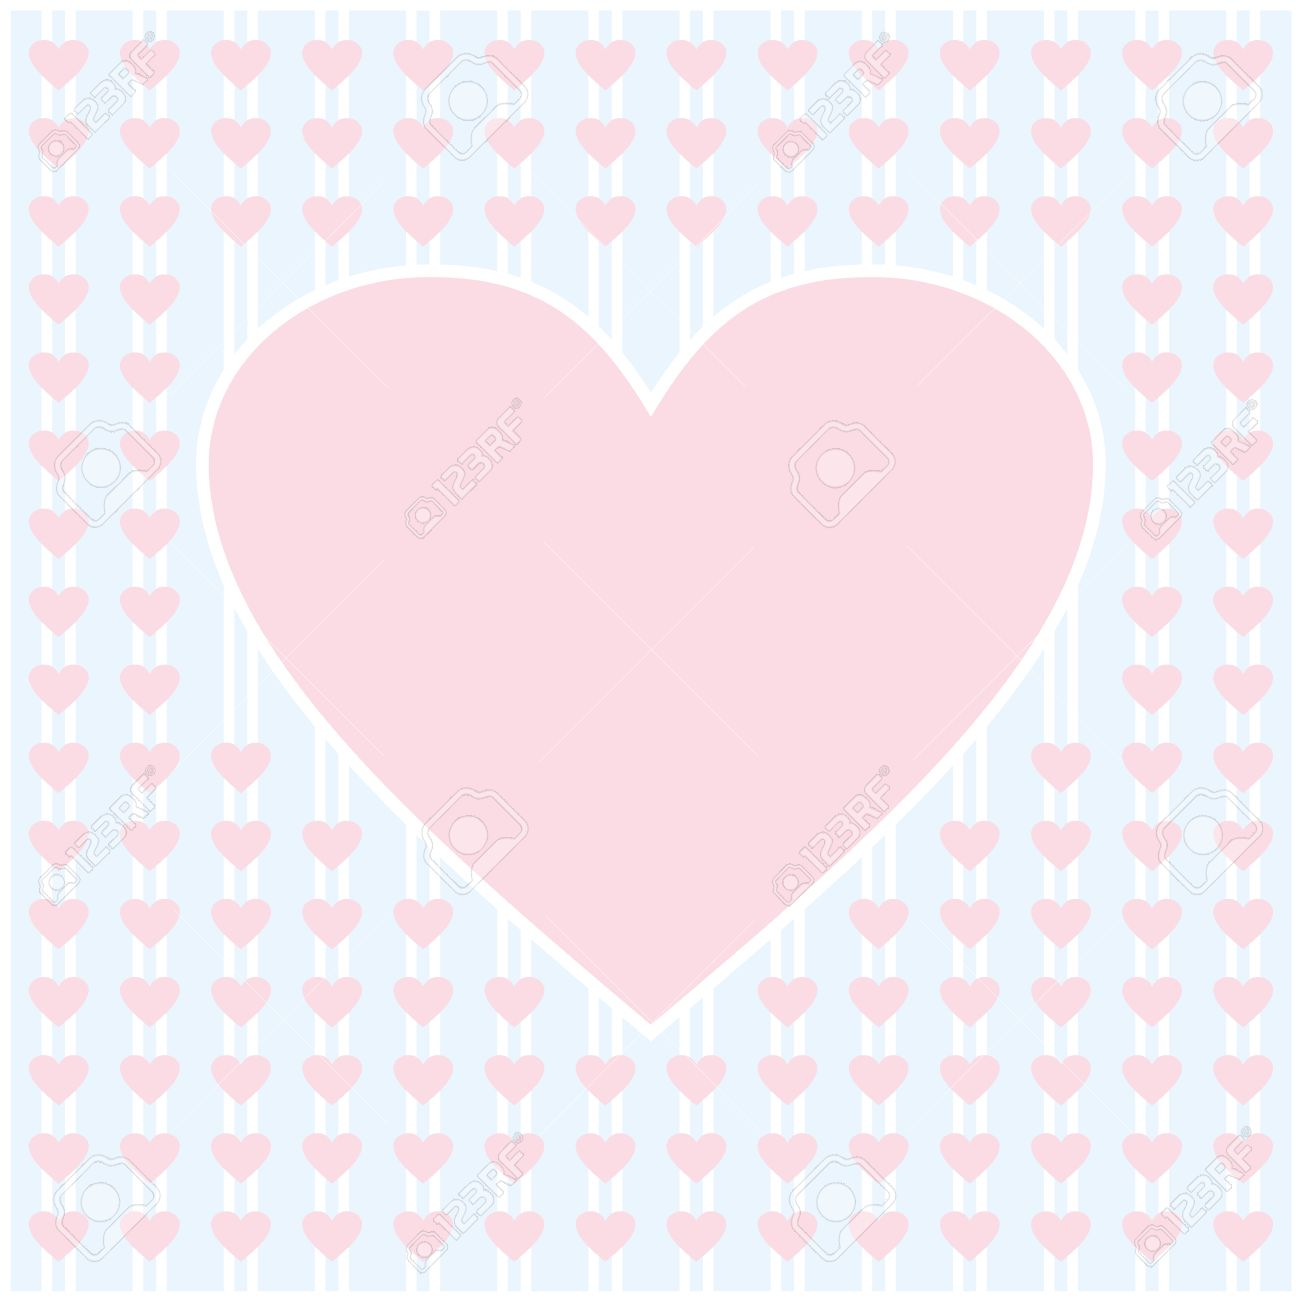 Pink Heart Border Frame Vector Blue Background Design For Valentines Day Love Card And Wedding